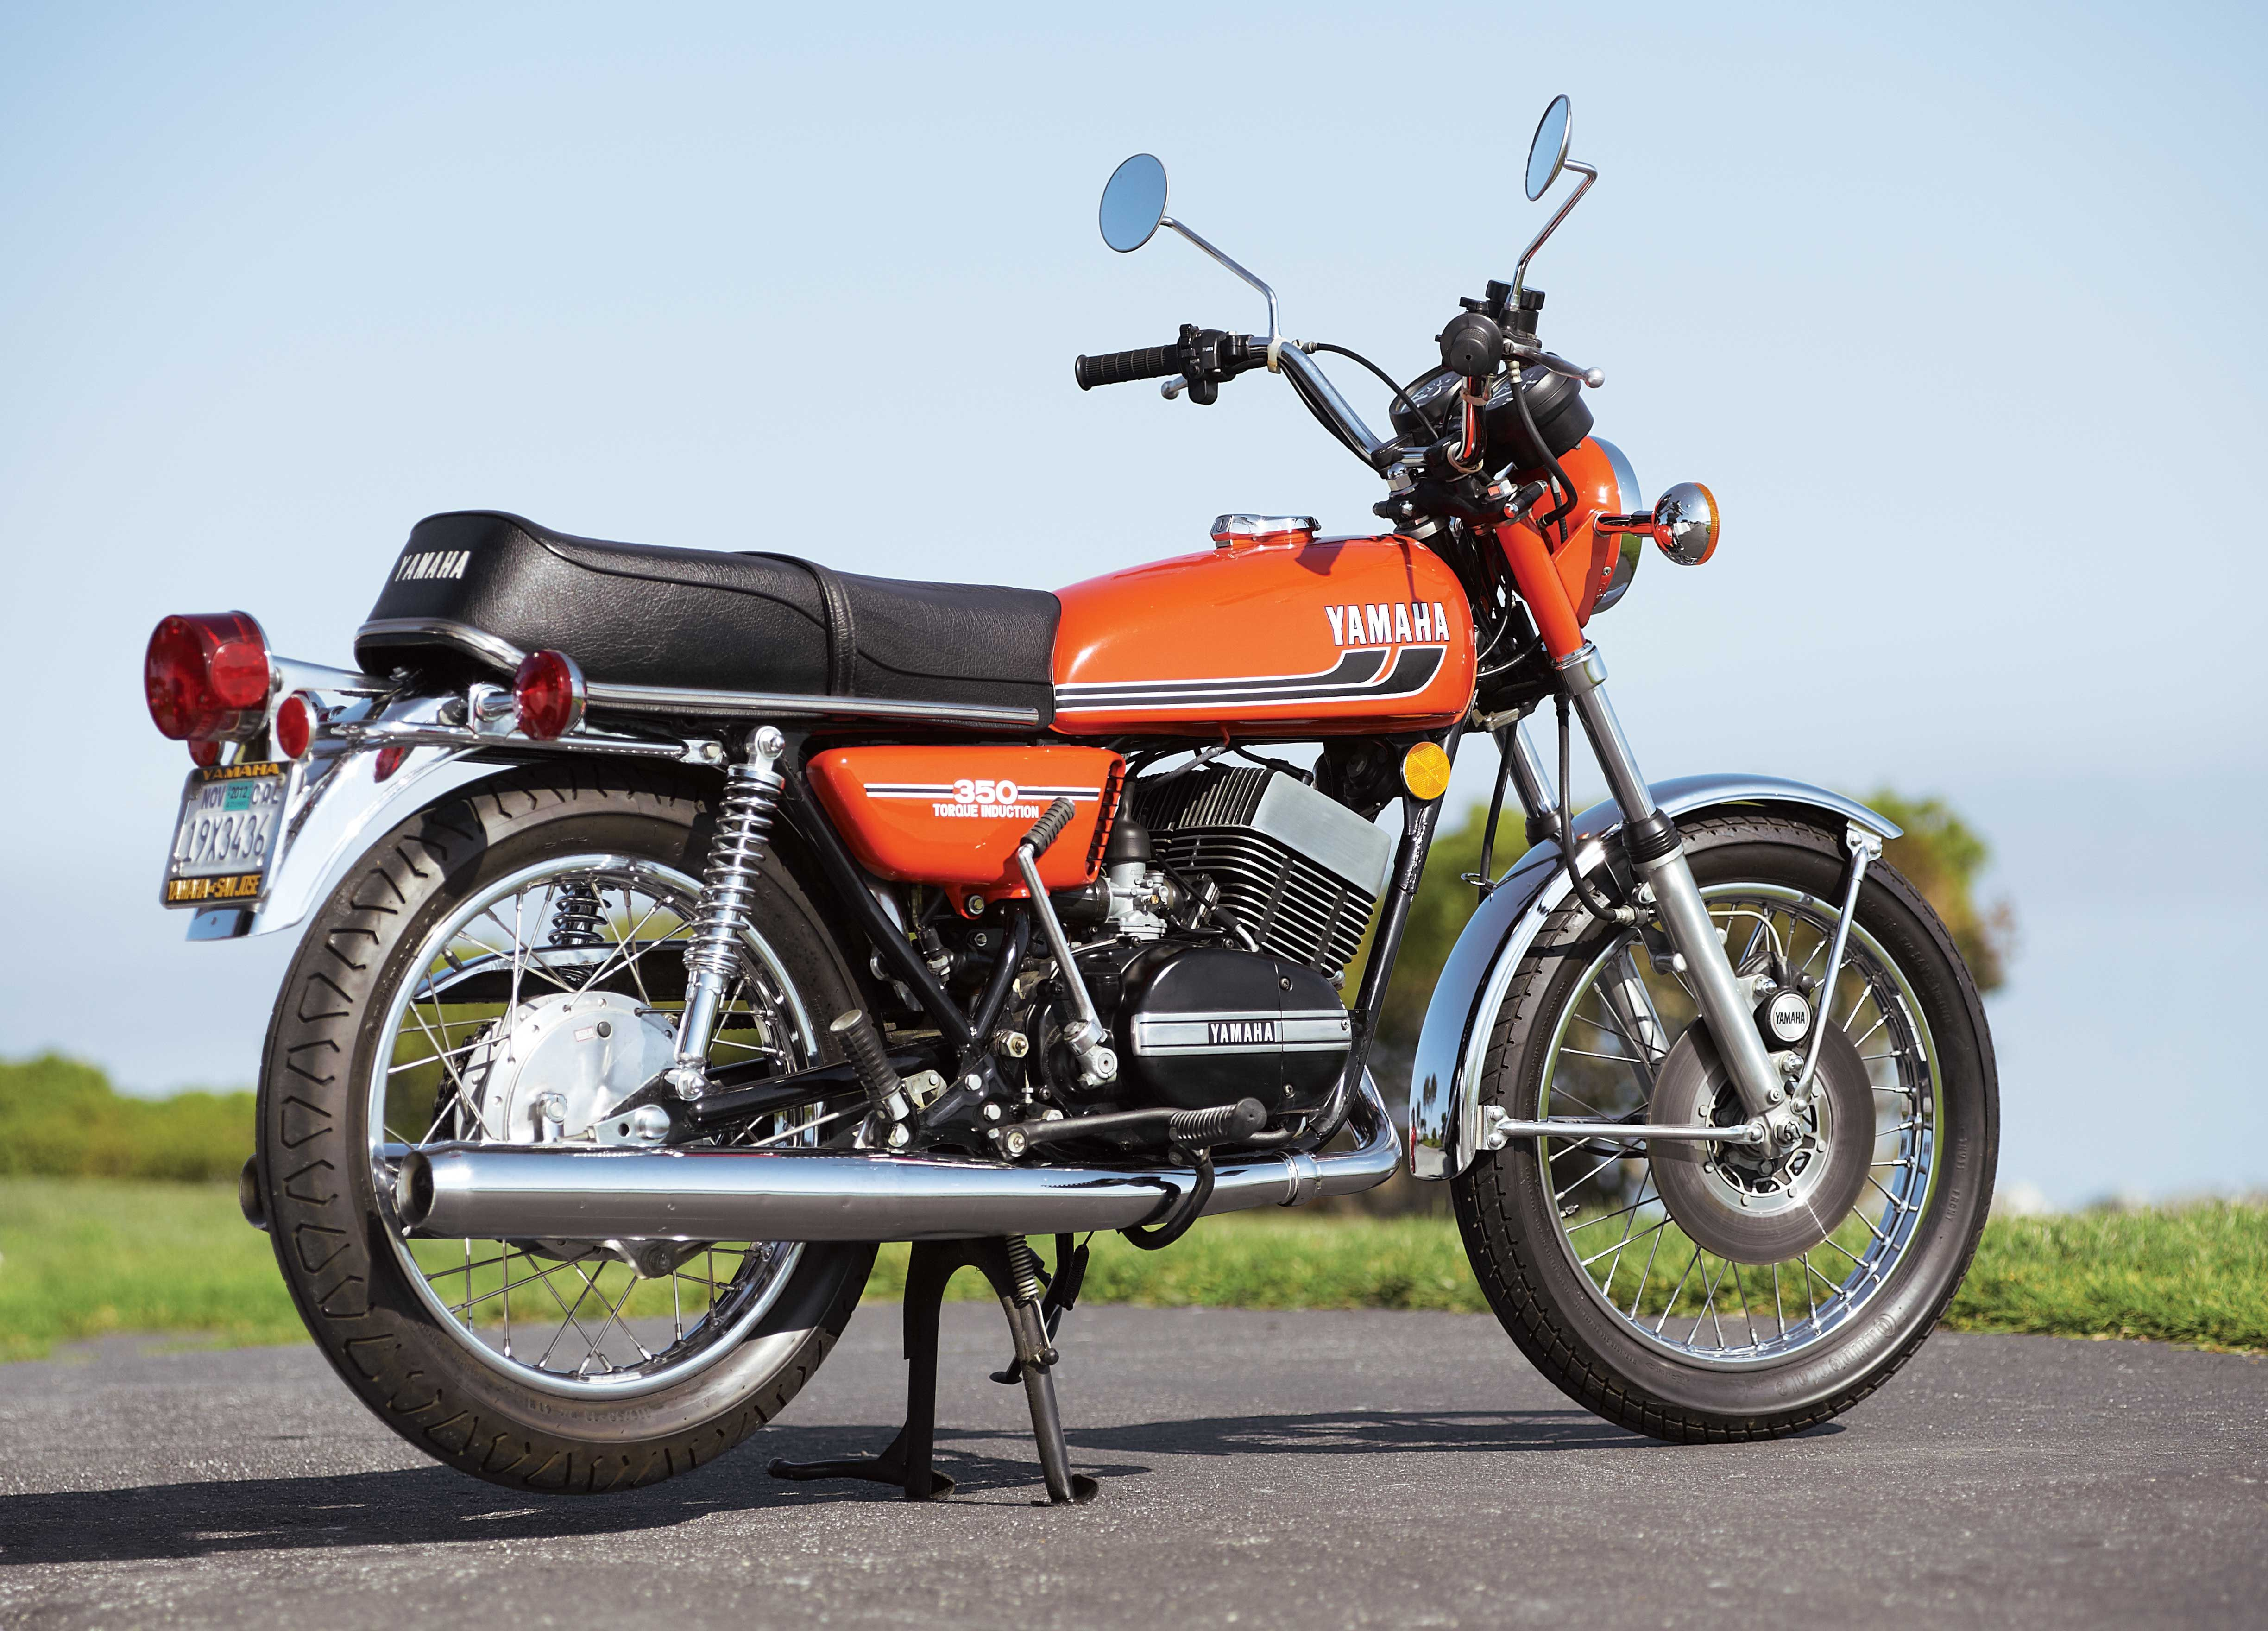 1975 yamaha rd350 best bang for the buck classic for Yamaha 350cc motorcycles